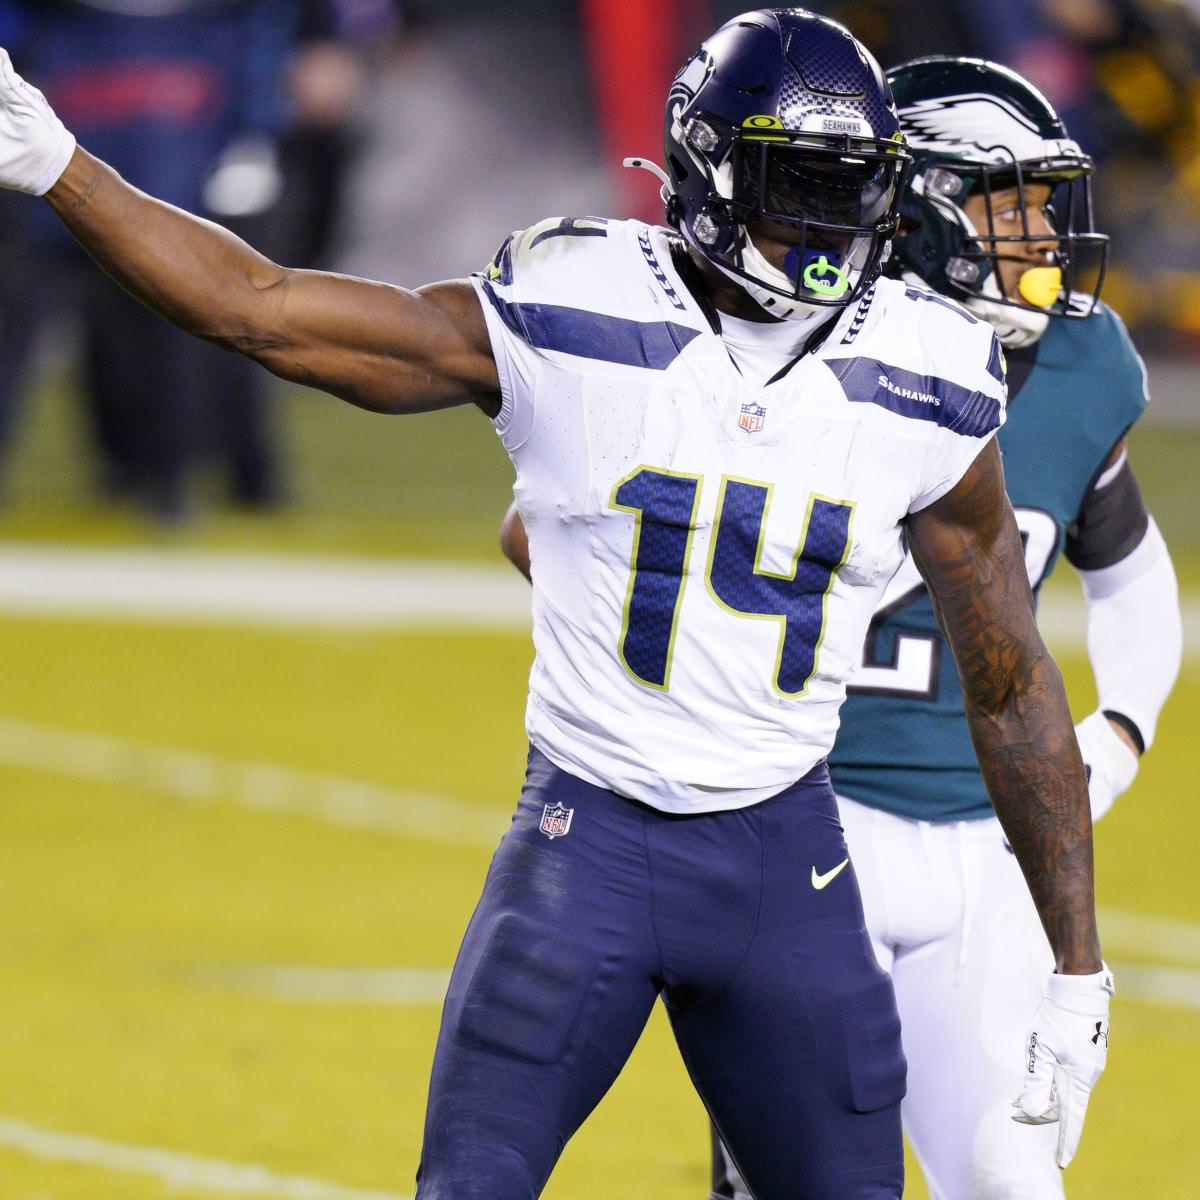 NFL Standings 2020: Week 13 Records, Playoff Scenarios, Wild-Card Picture